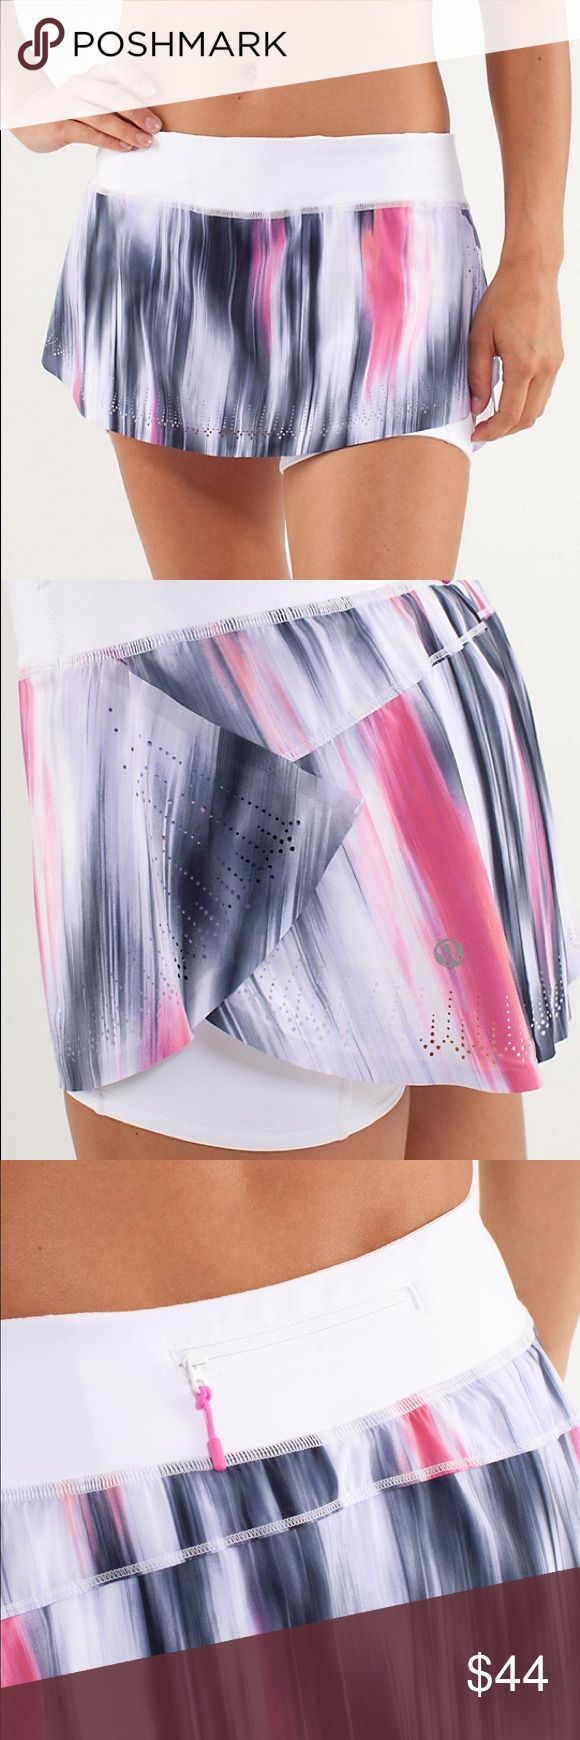 Lululemon Light As Air Skirt Mirage Indigo/ White Size 6 Lululemon Run: Light As Air Skirt in Mirage Deep Indigo/ White. Luxtreme/Swift. Like-New Condition.   All items come from a smoke free home and are shipped on the same or following day an order is placed.   Items are shipped in polymailers placed INSIDE boxes to ensure all purchases are completely protected from damage or weather conditions. lululemon athletica Shorts Skorts